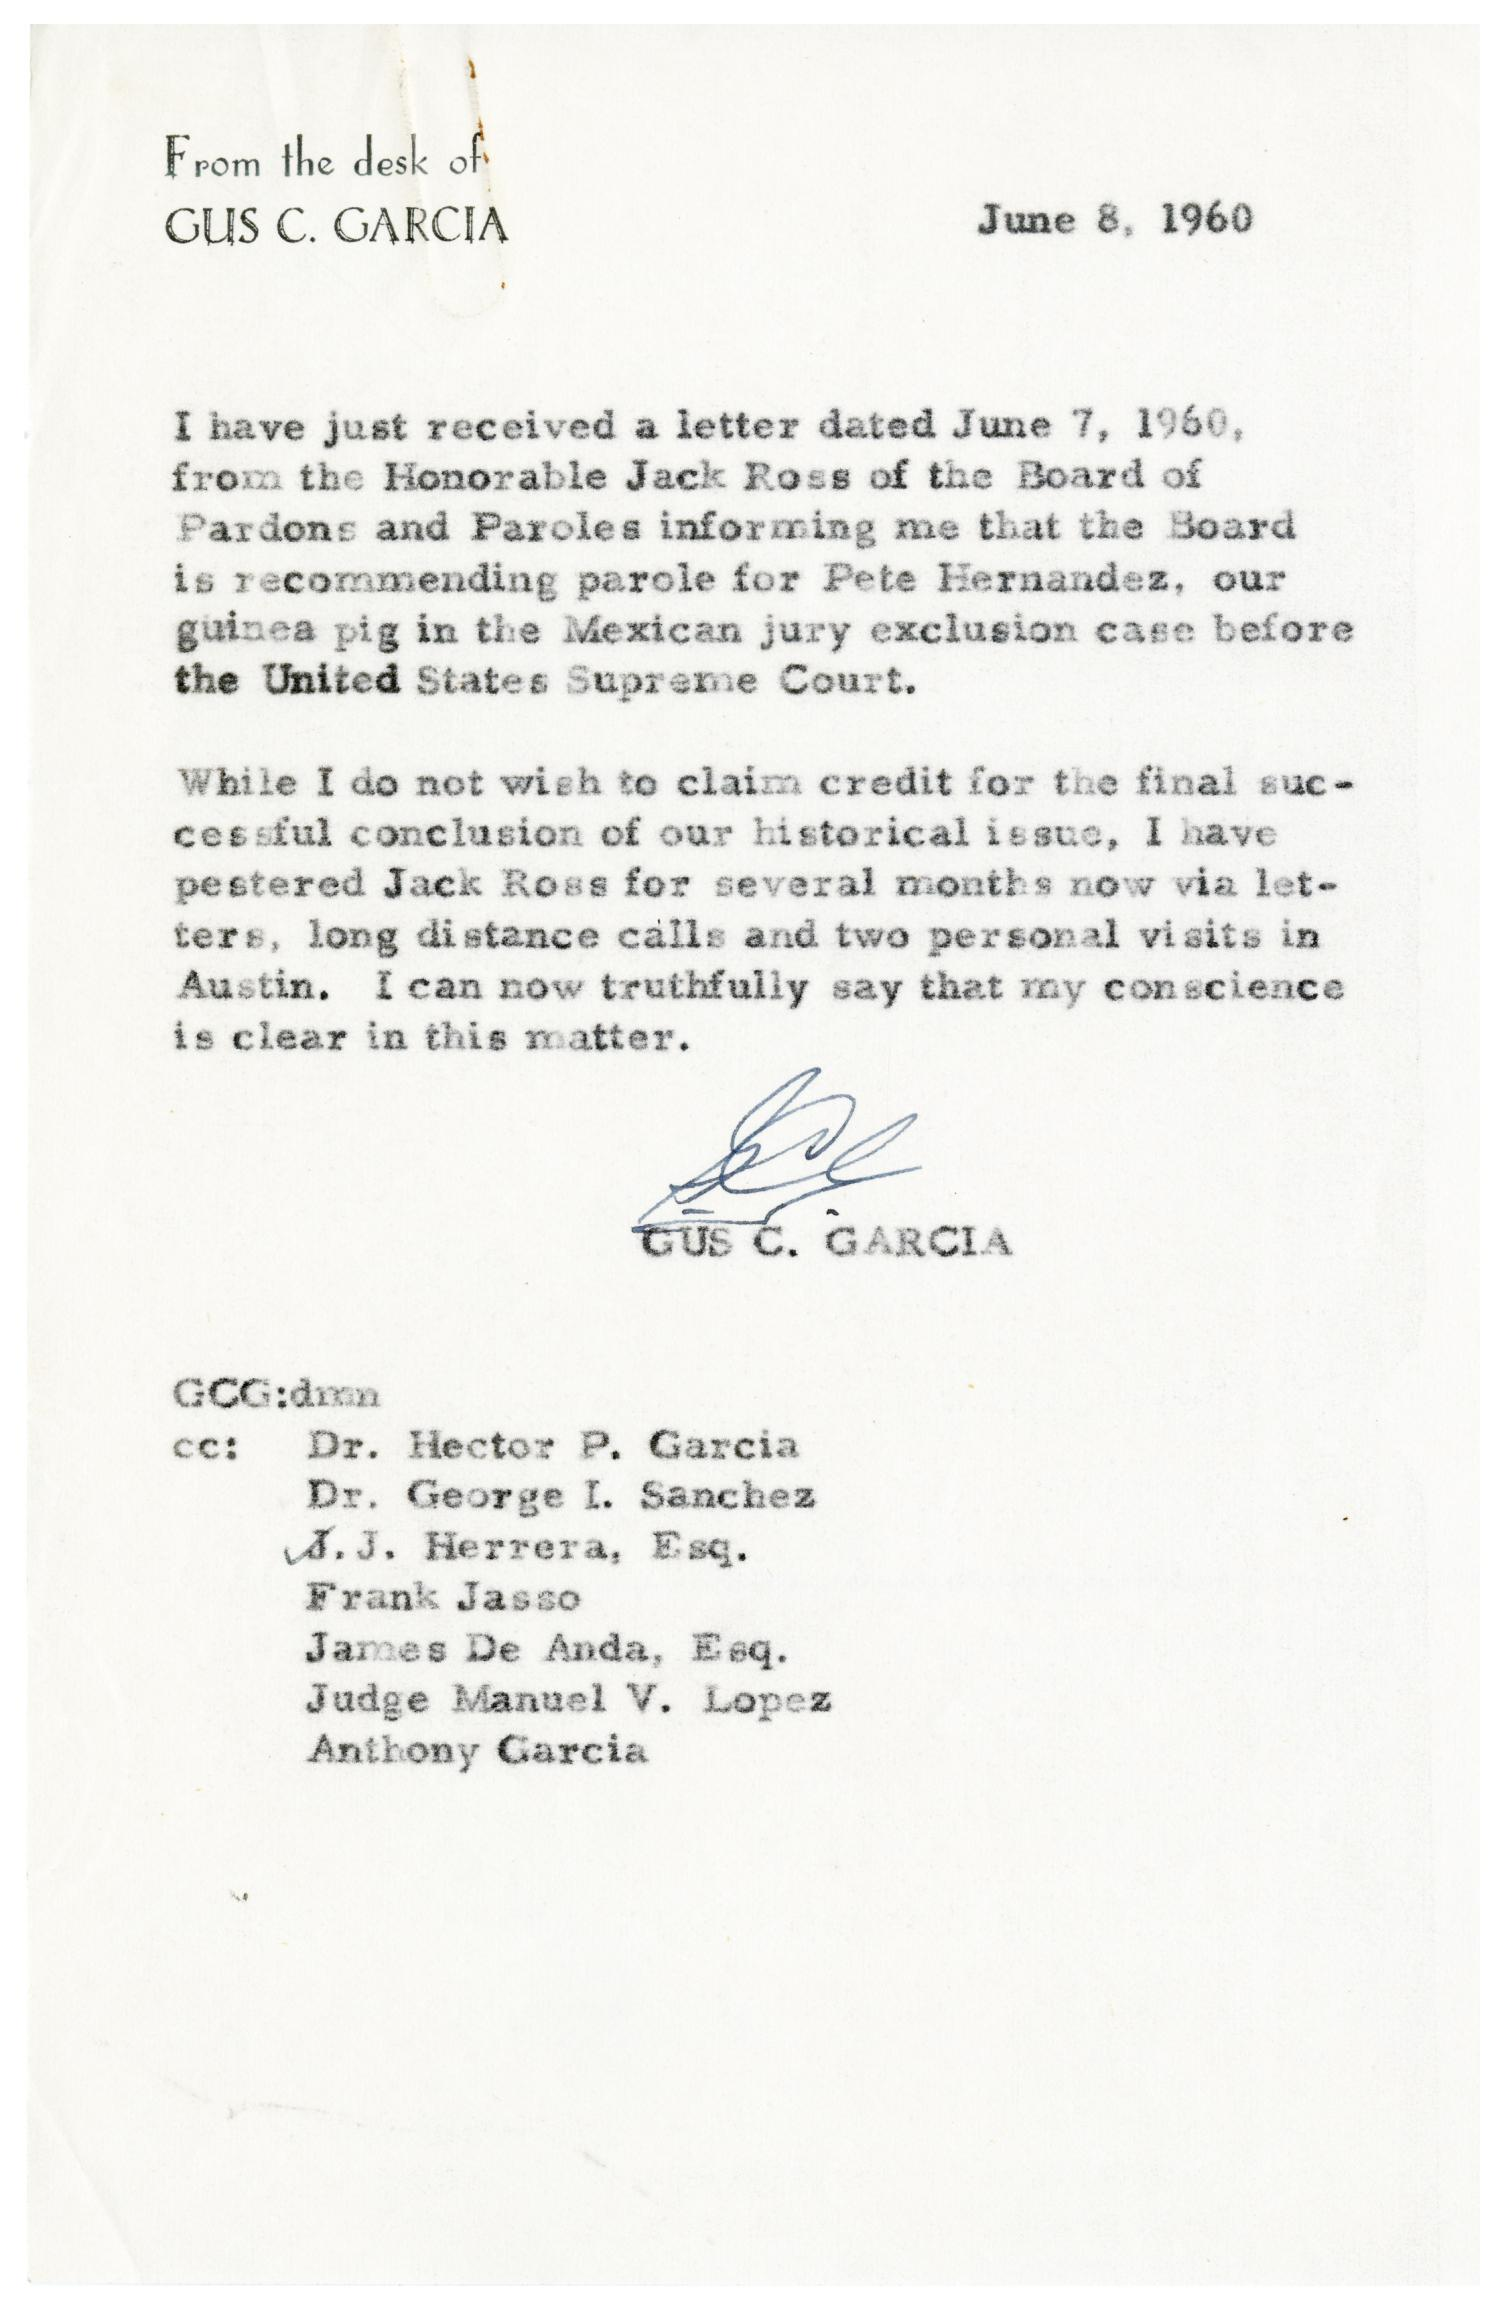 letter from gus c garcia to hector p garcia and others 1960 06 08 the portal to texas history